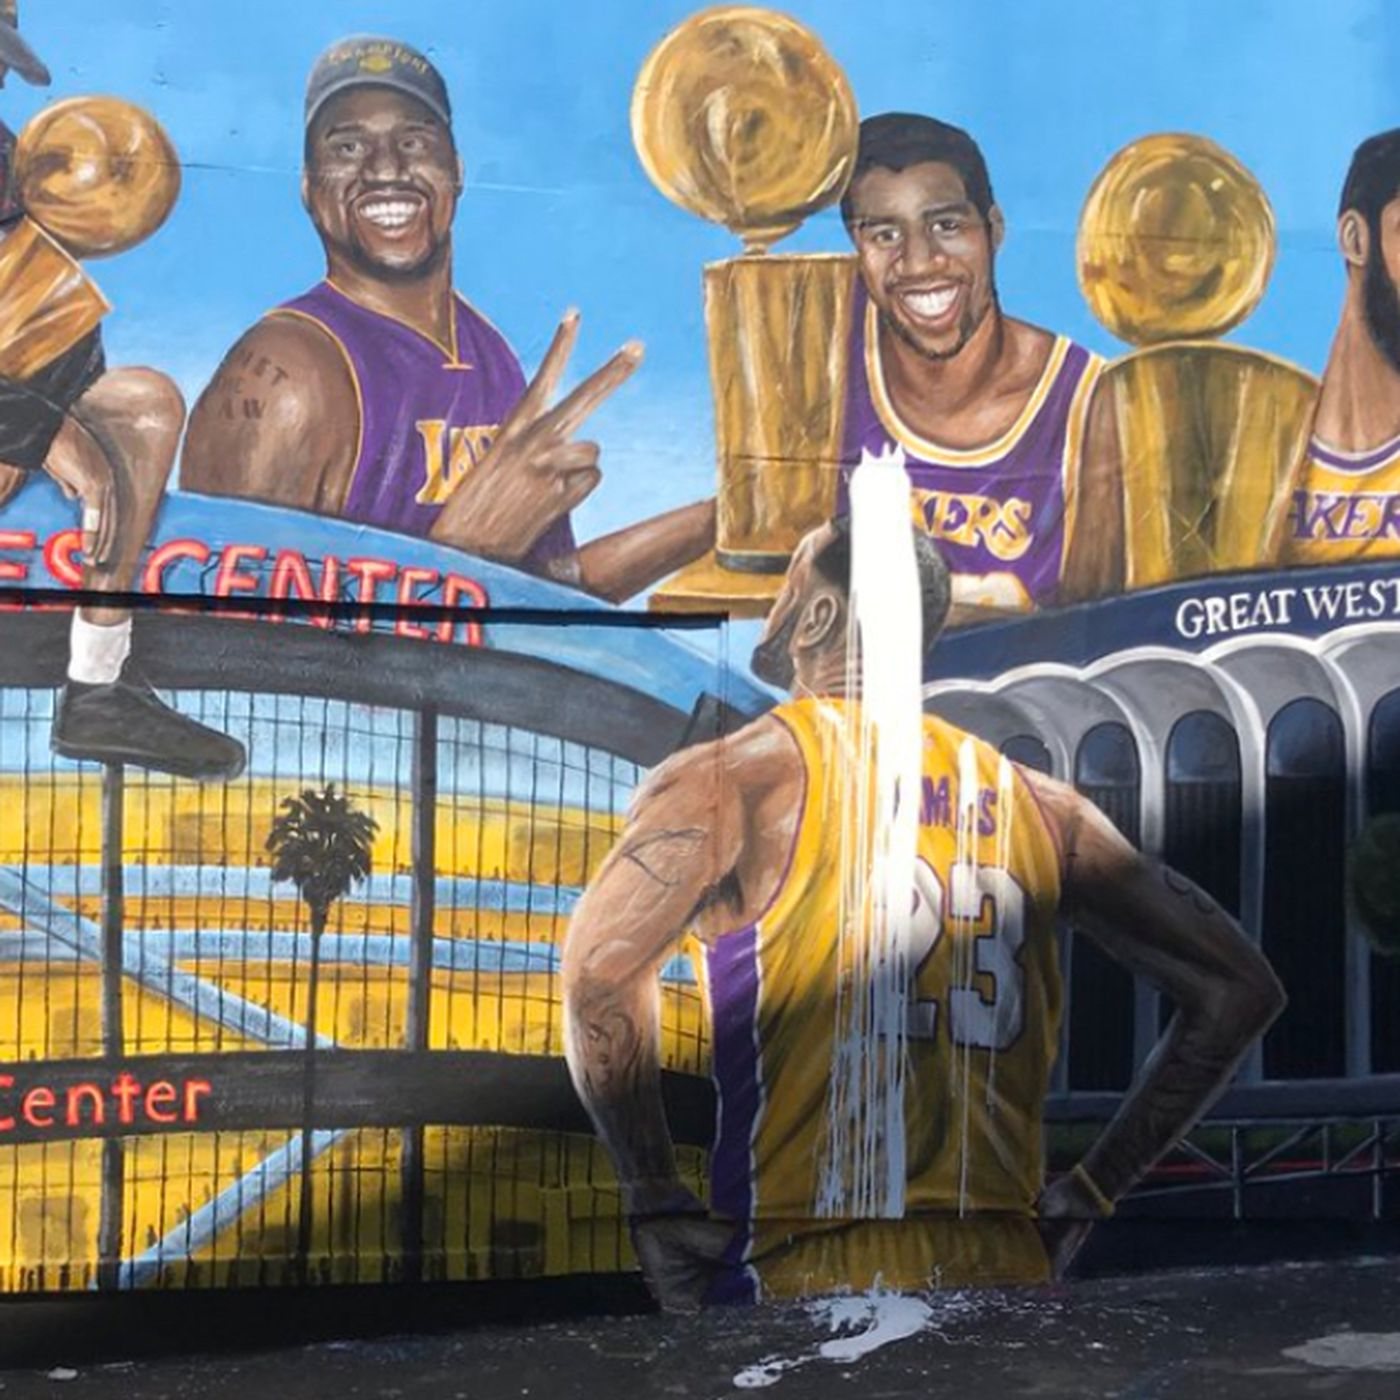 lebron james lakers murals keep getting vandalized in l a